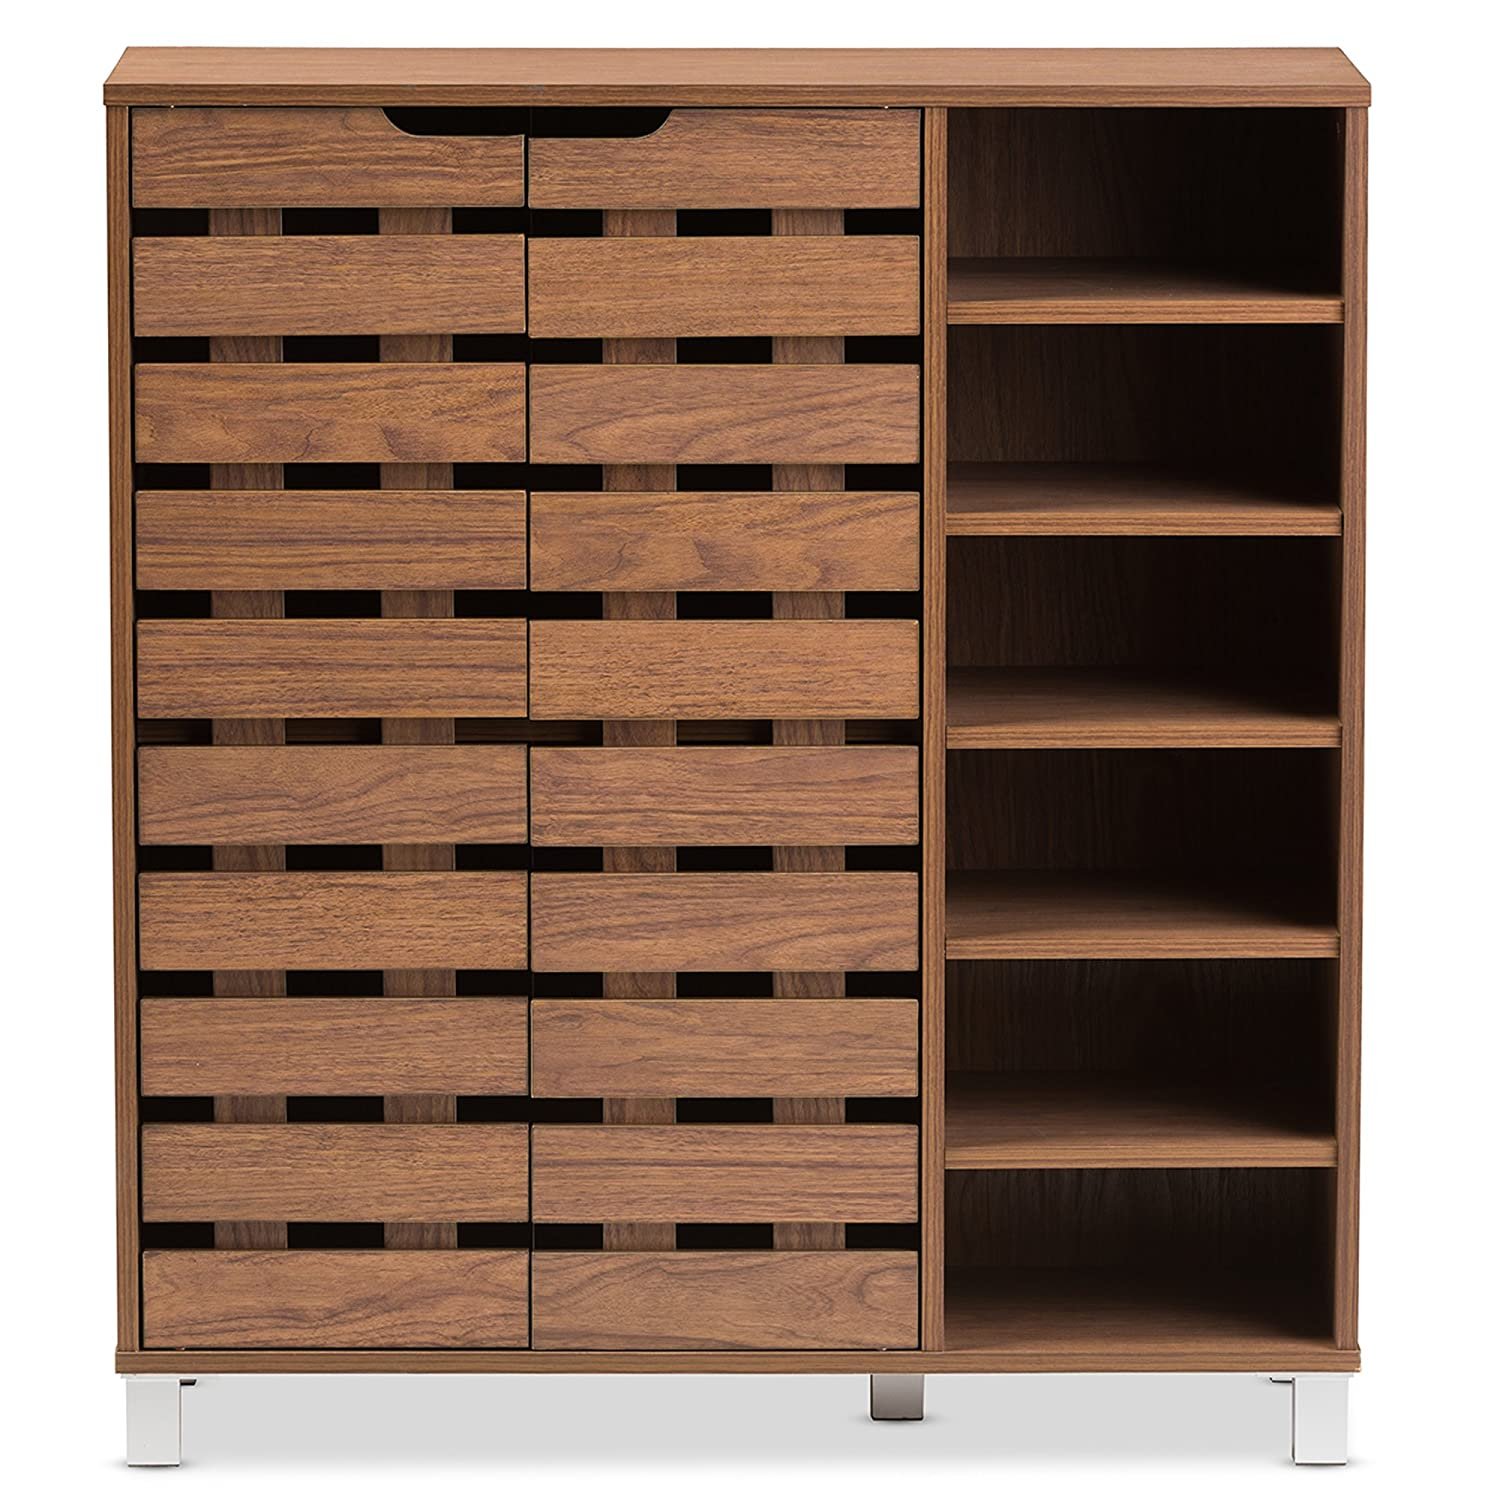 Amazon com baxton studio eloise modern contemporary beech wood 2 door shoe cabinet with open shelves walnut kitchen dining